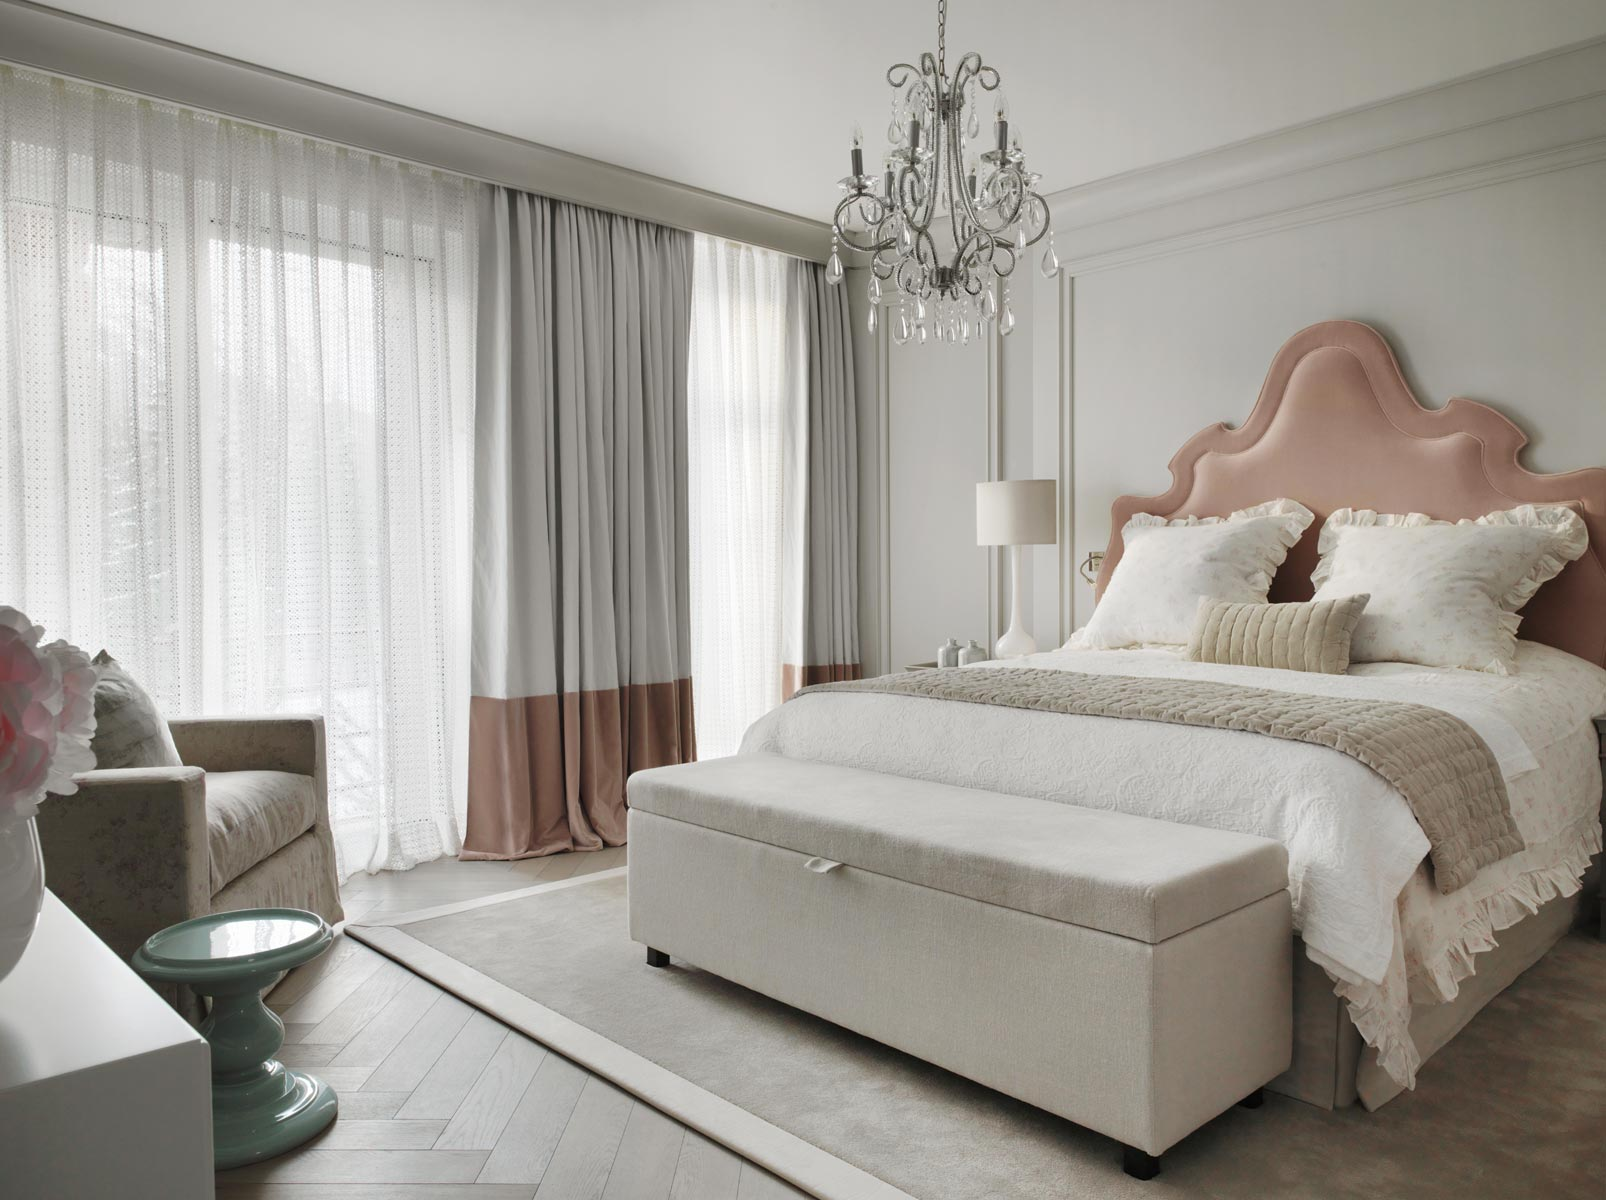 Top 8 Kelly Hoppen Design Ideas